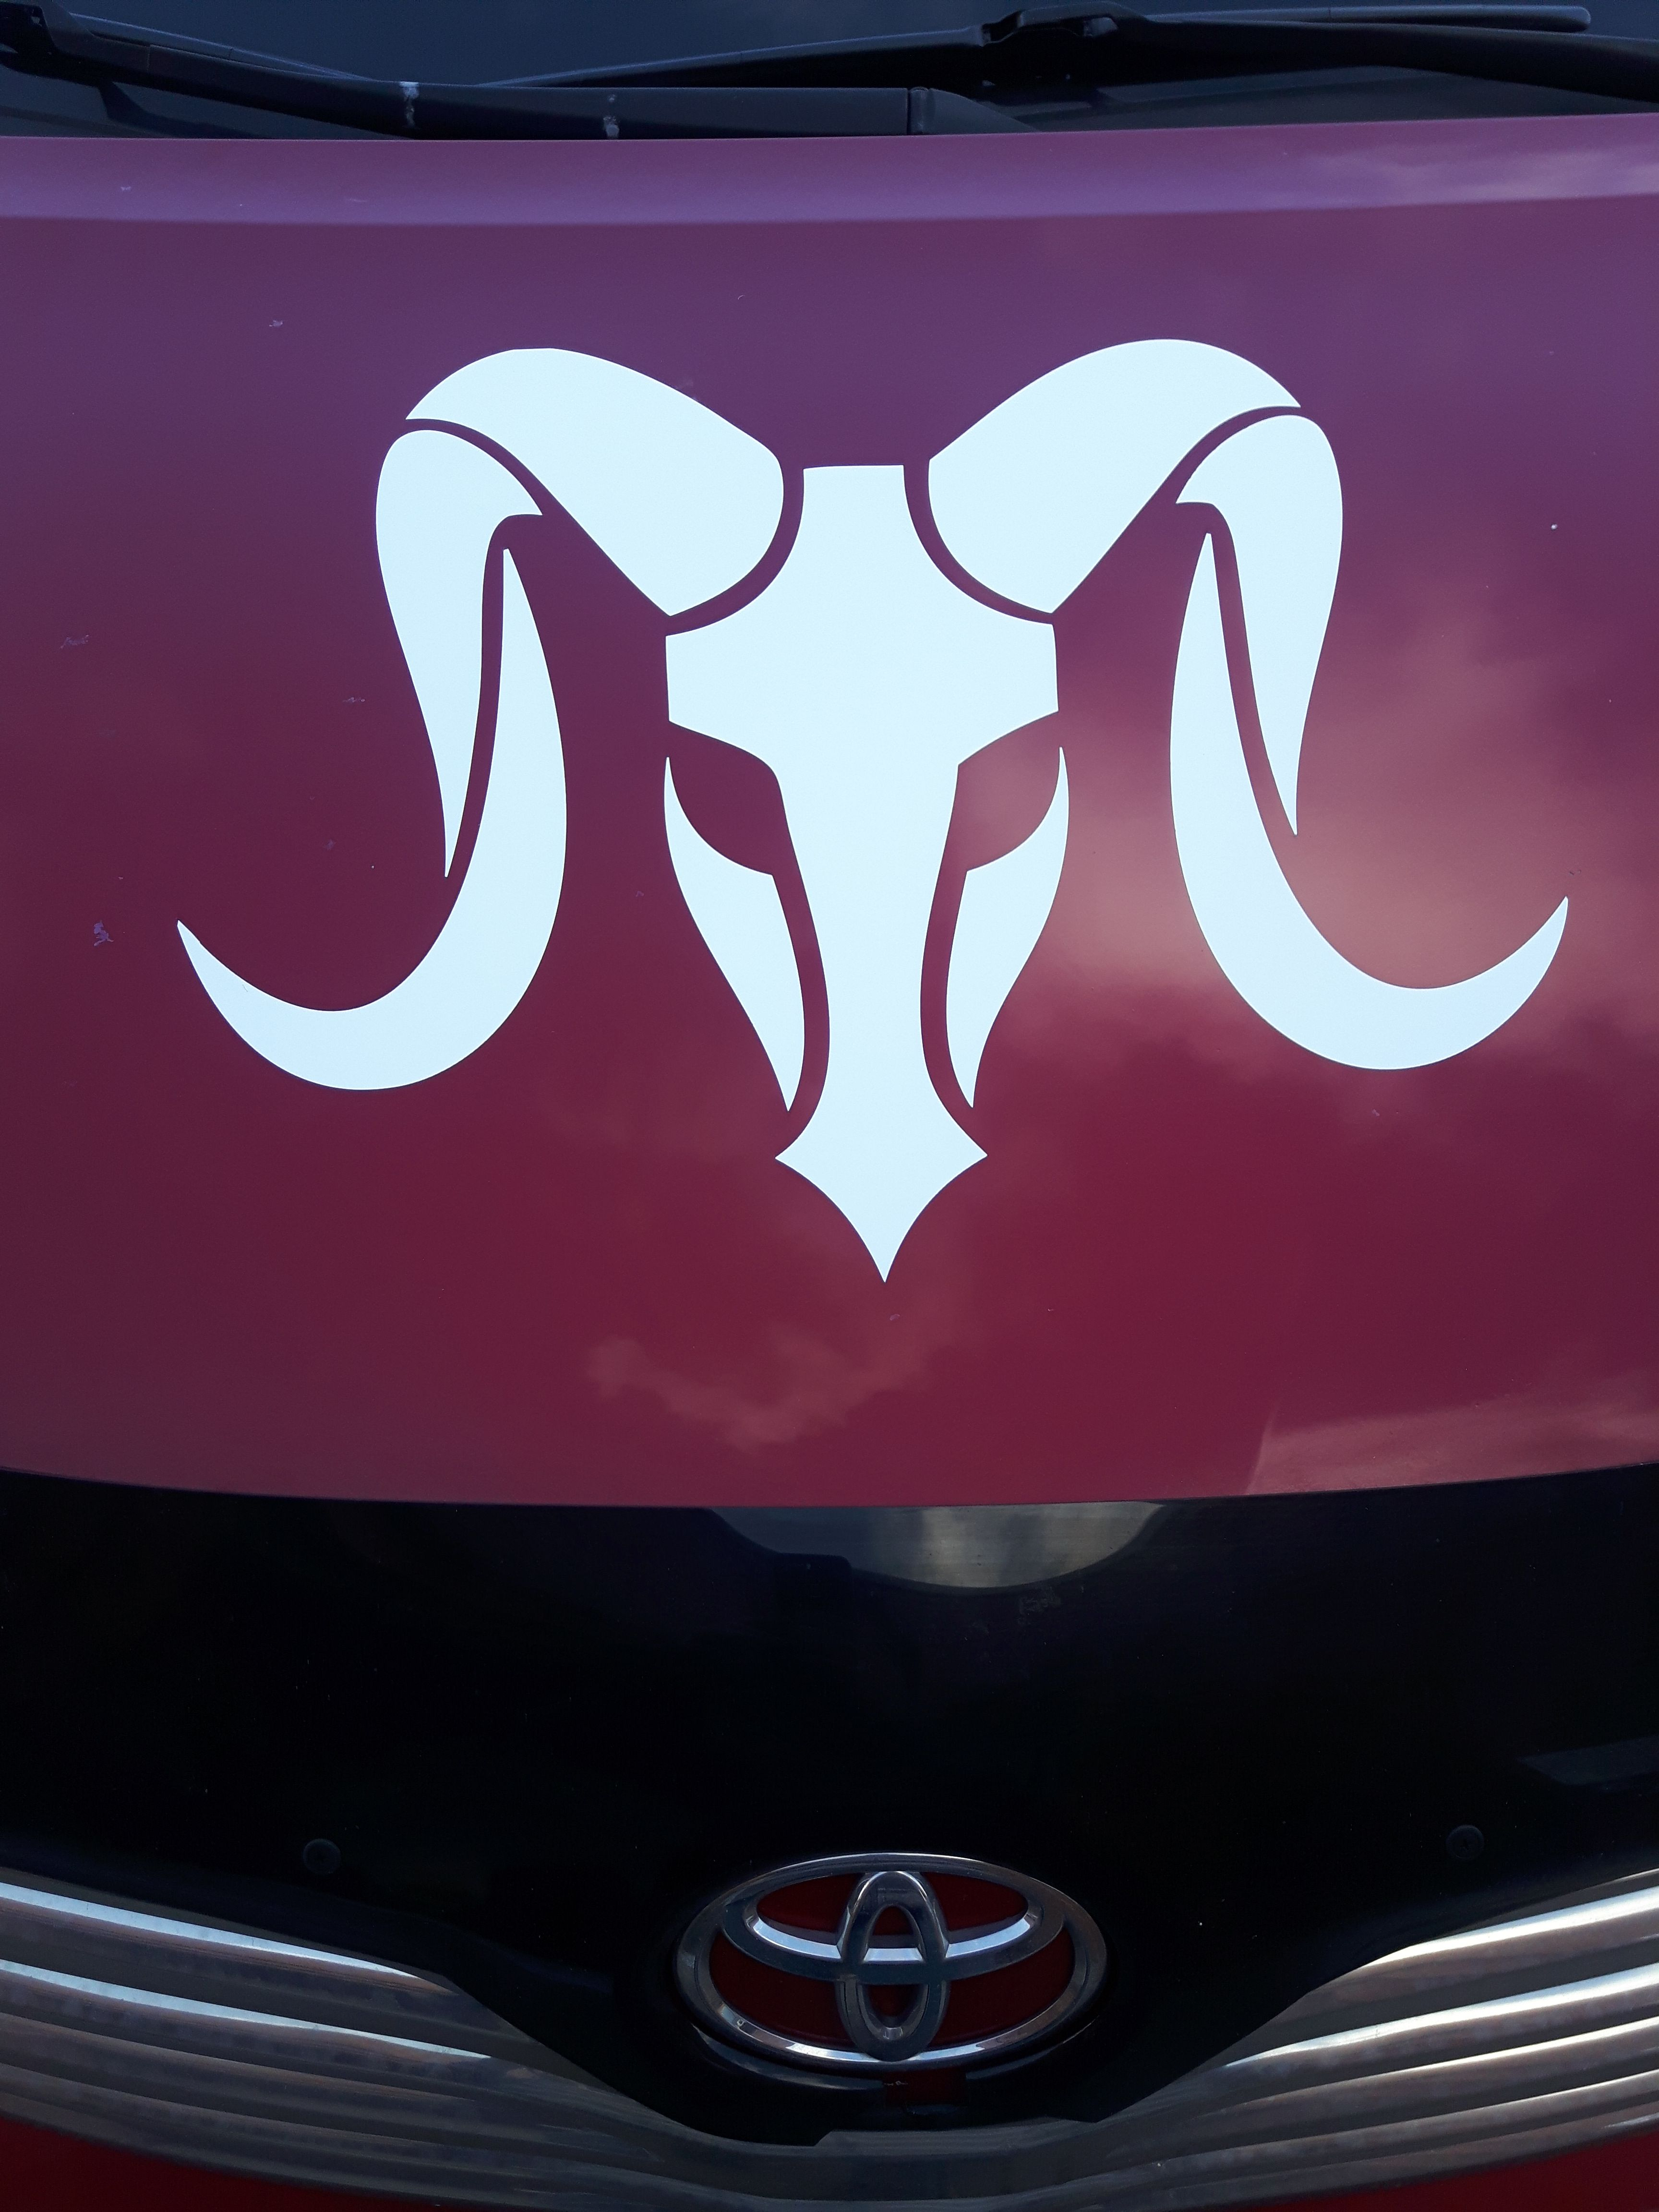 Ram Taurus Cutout Vinyl Decal On Your Vehicle Cutout And Printed Vinyl Stickers Are 5 Sq Ft Installation Is 7 Sq Ft E Vinyl Decals Vinyl Sticker Mazda Logo [ 4608 x 3456 Pixel ]